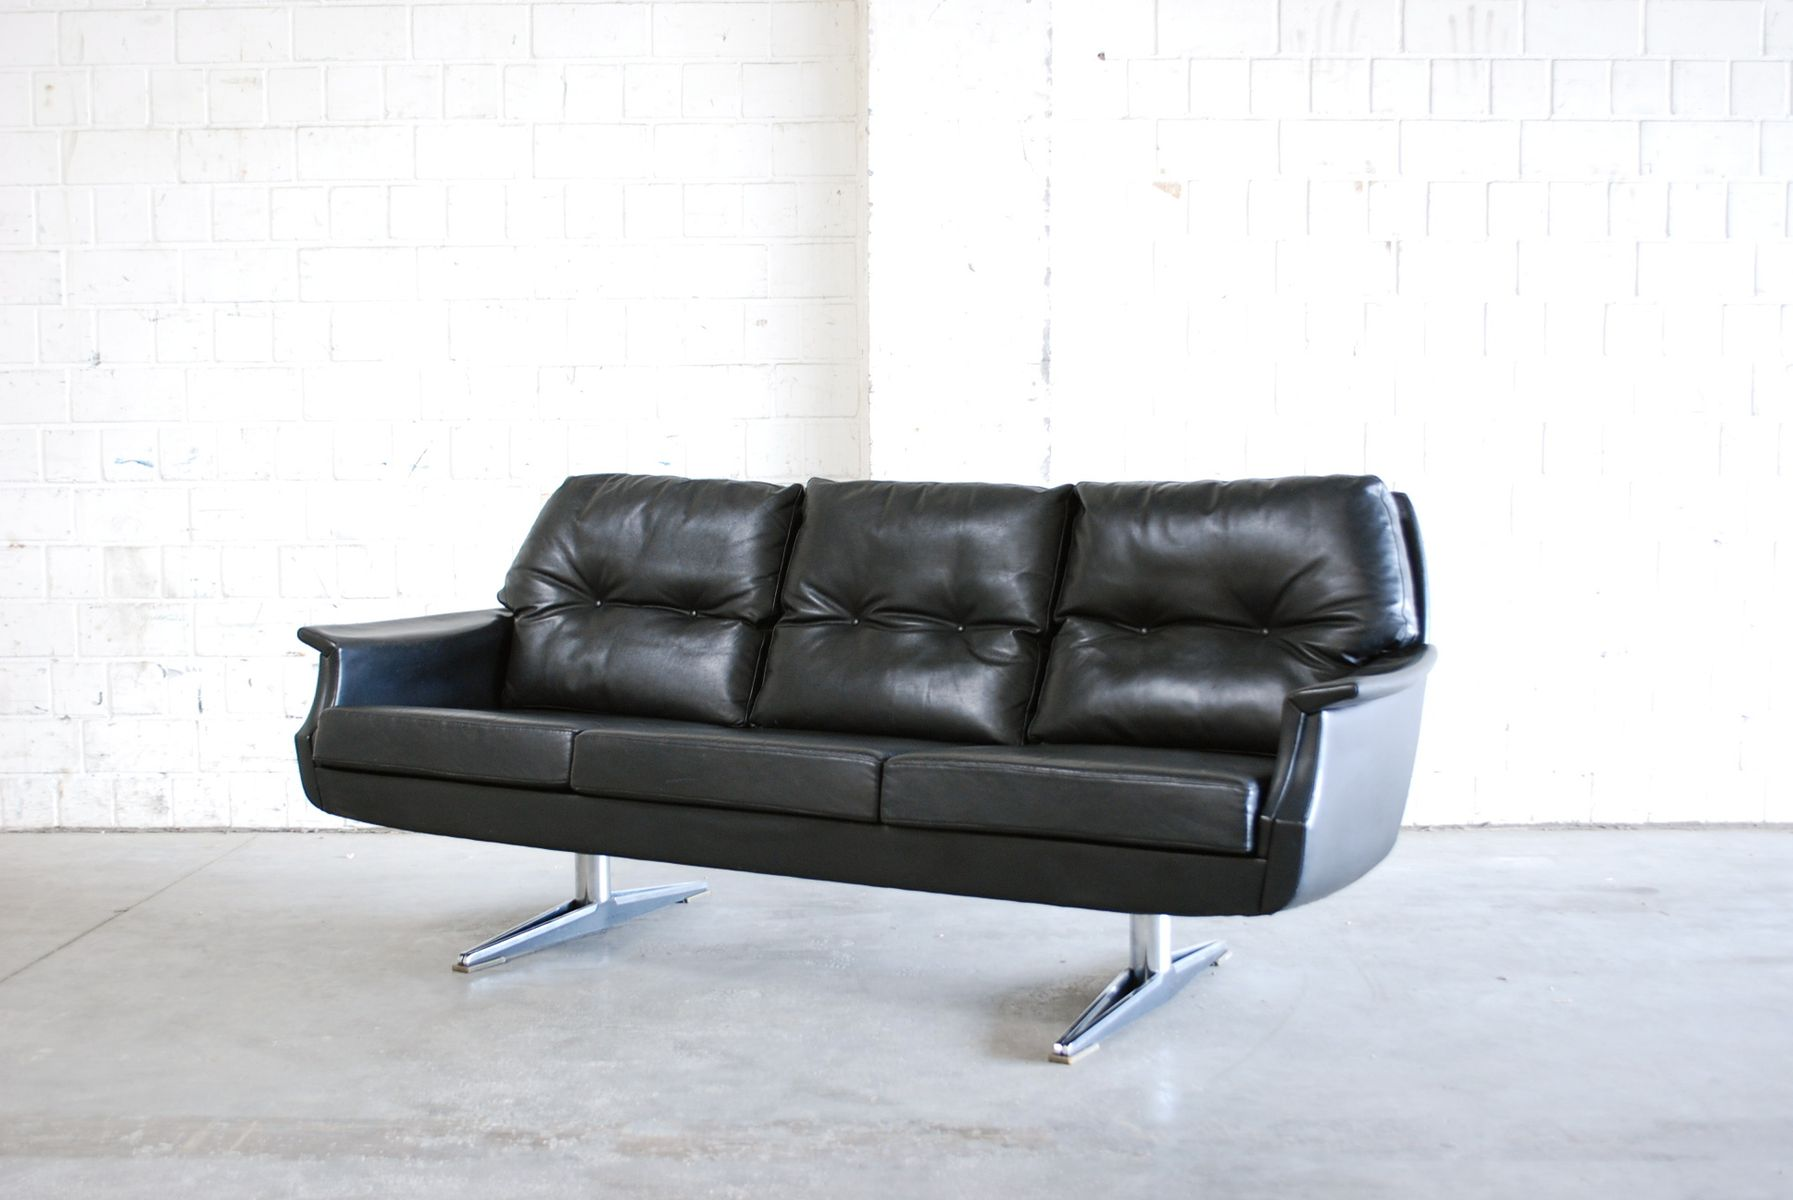 vintage leder sofa 1970er bei pamono kaufen. Black Bedroom Furniture Sets. Home Design Ideas